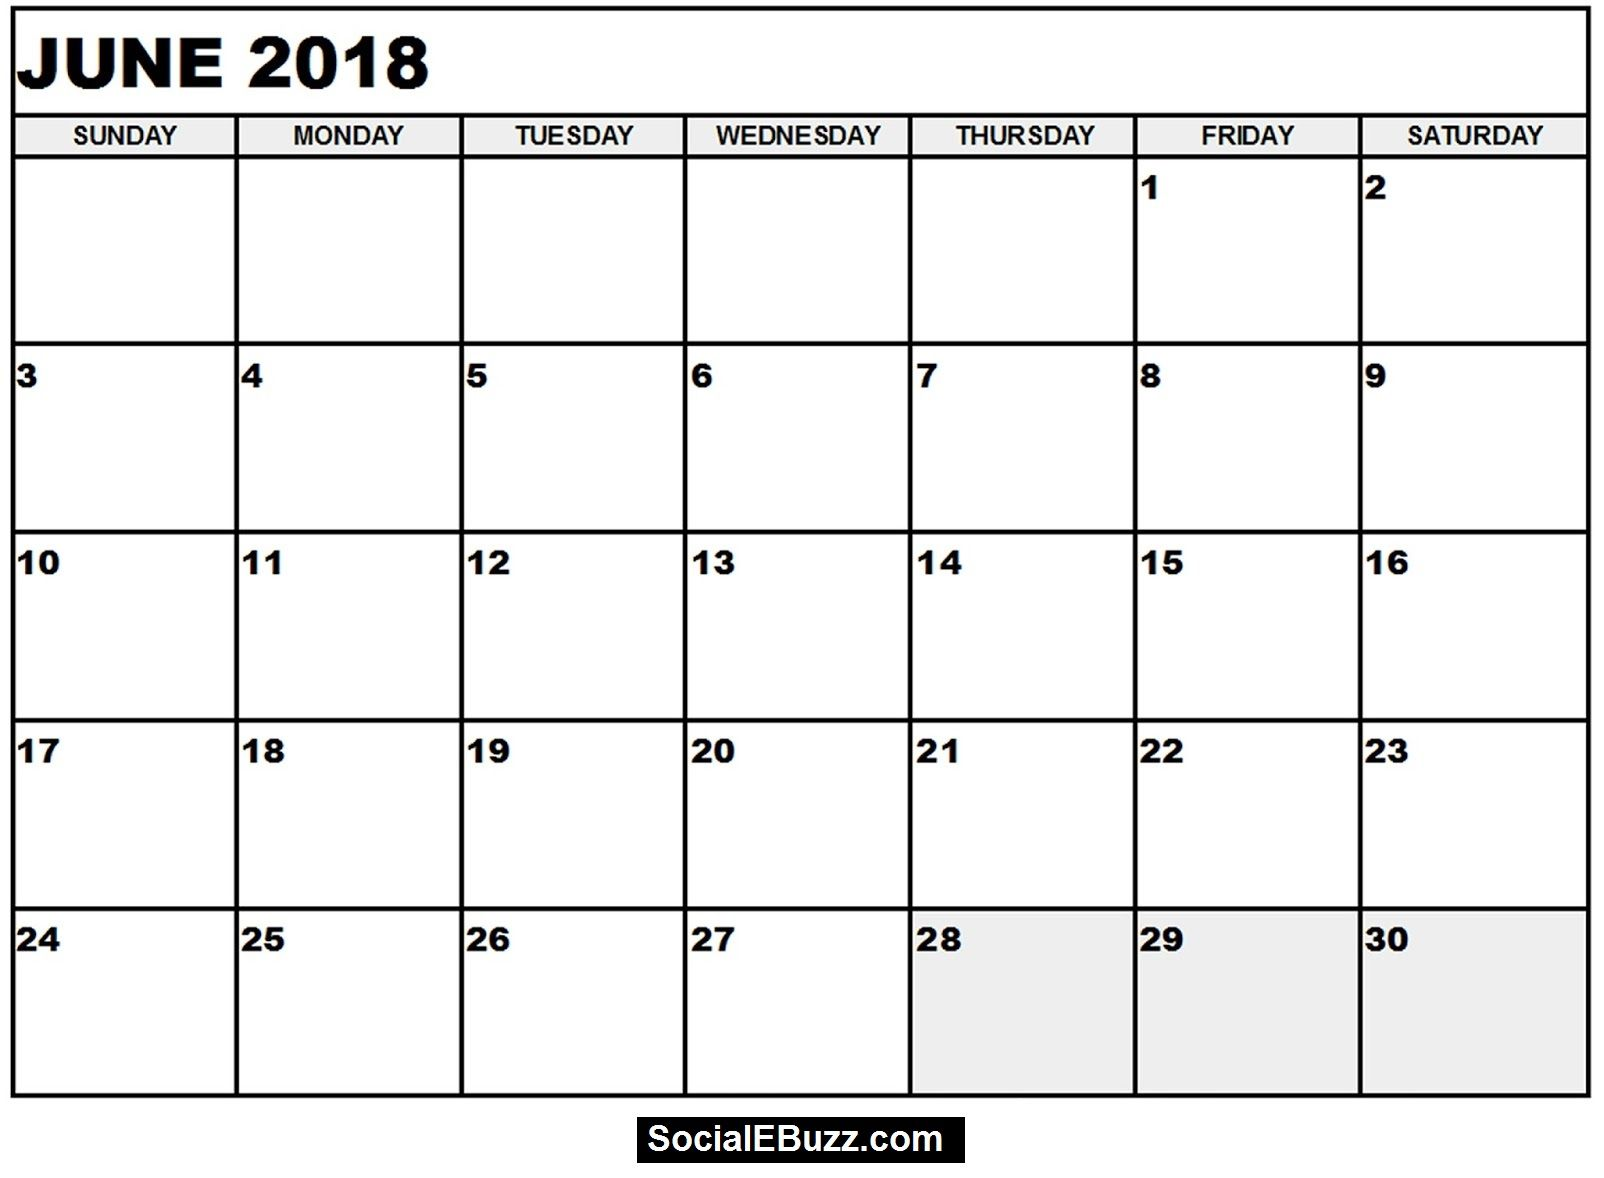 June 2018 Calendar Printable Template, June Calendar 2018, June ...